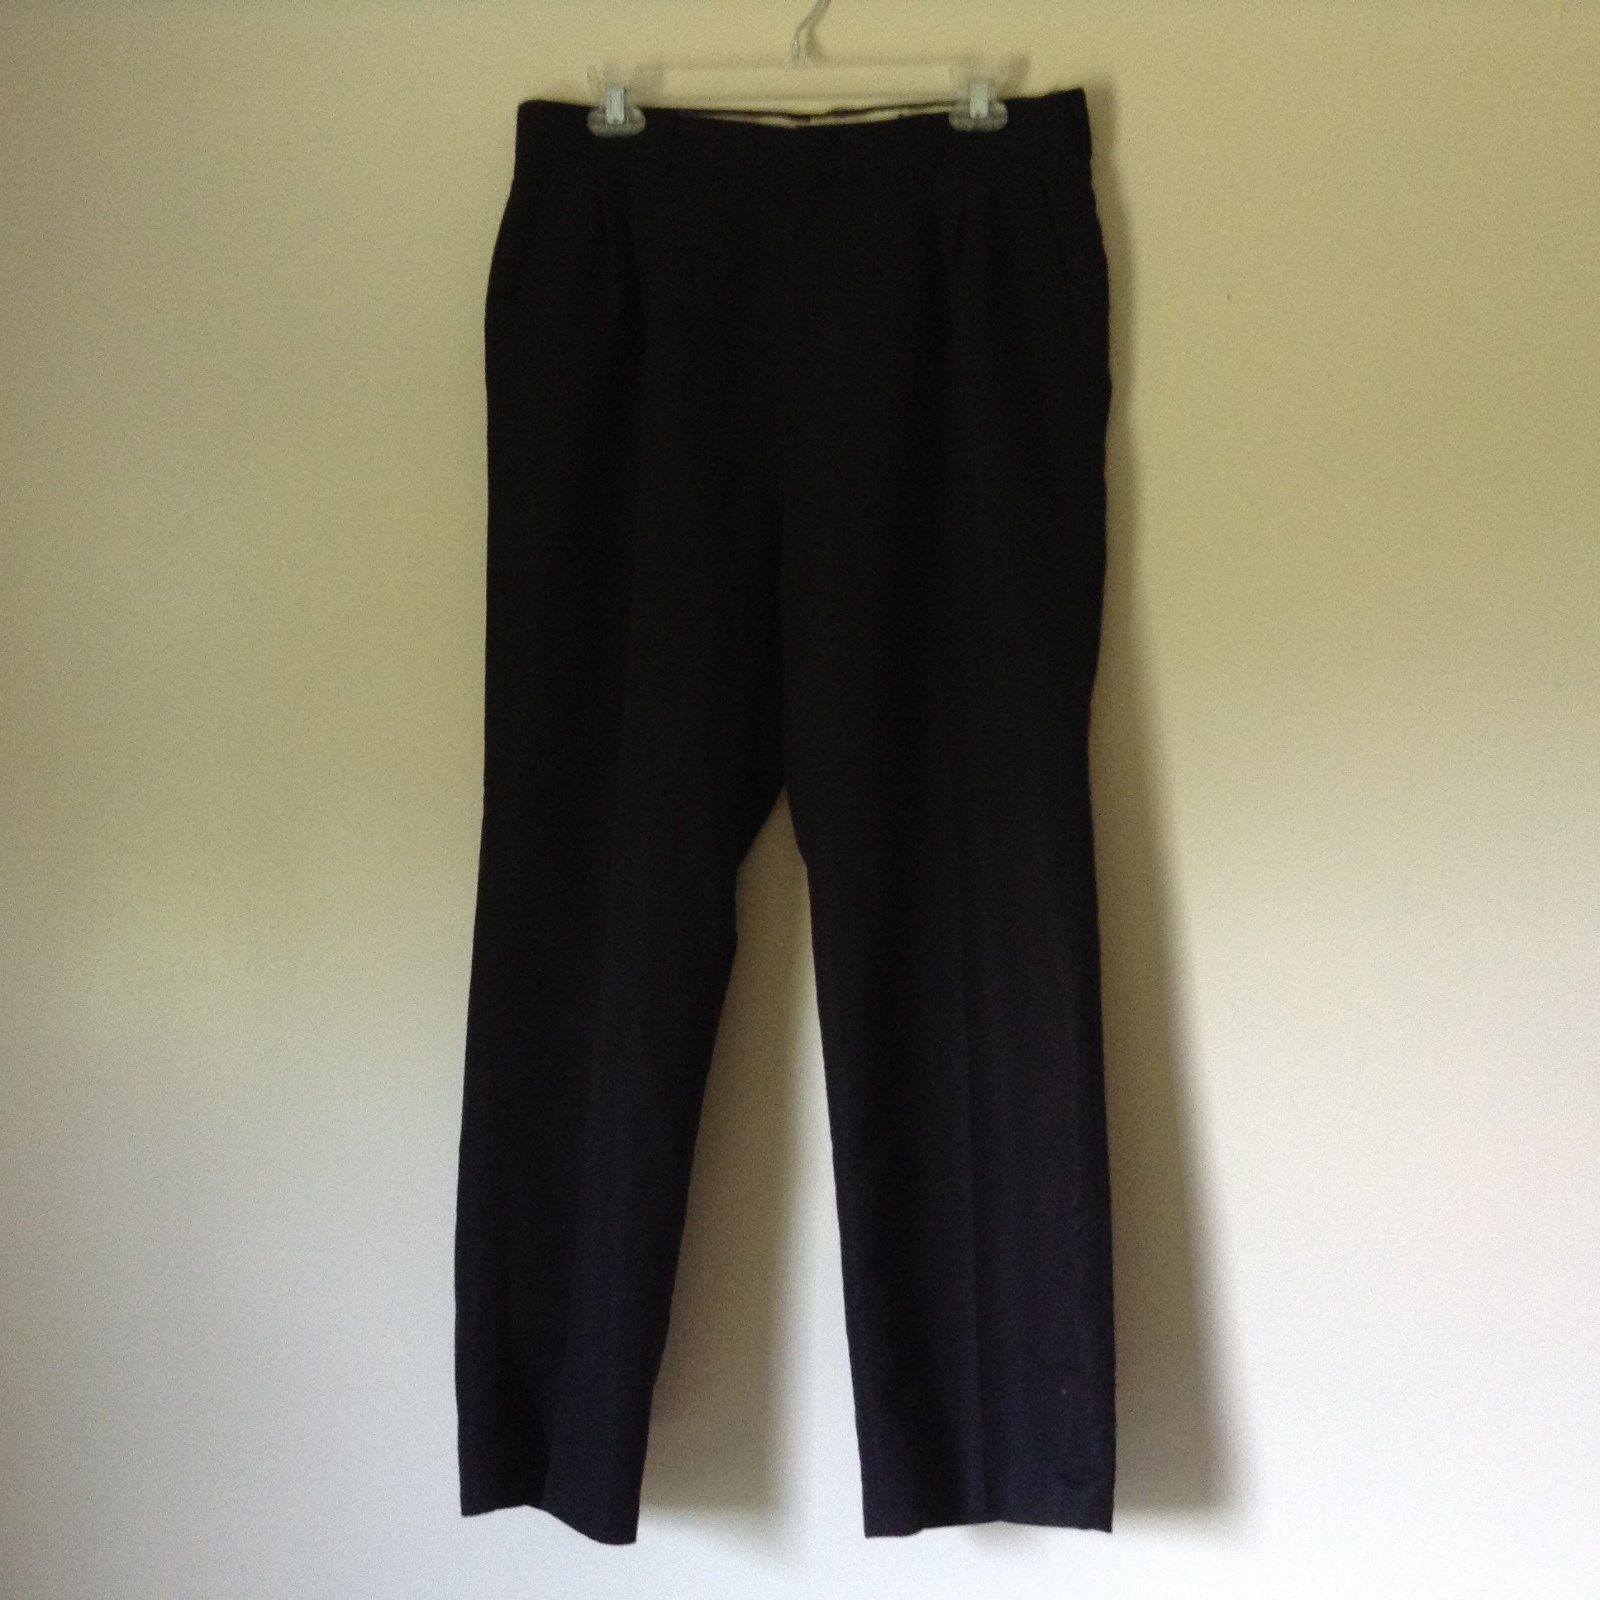 Black Pleated Dress Pants by Haggar No Size Tag Measurements Below